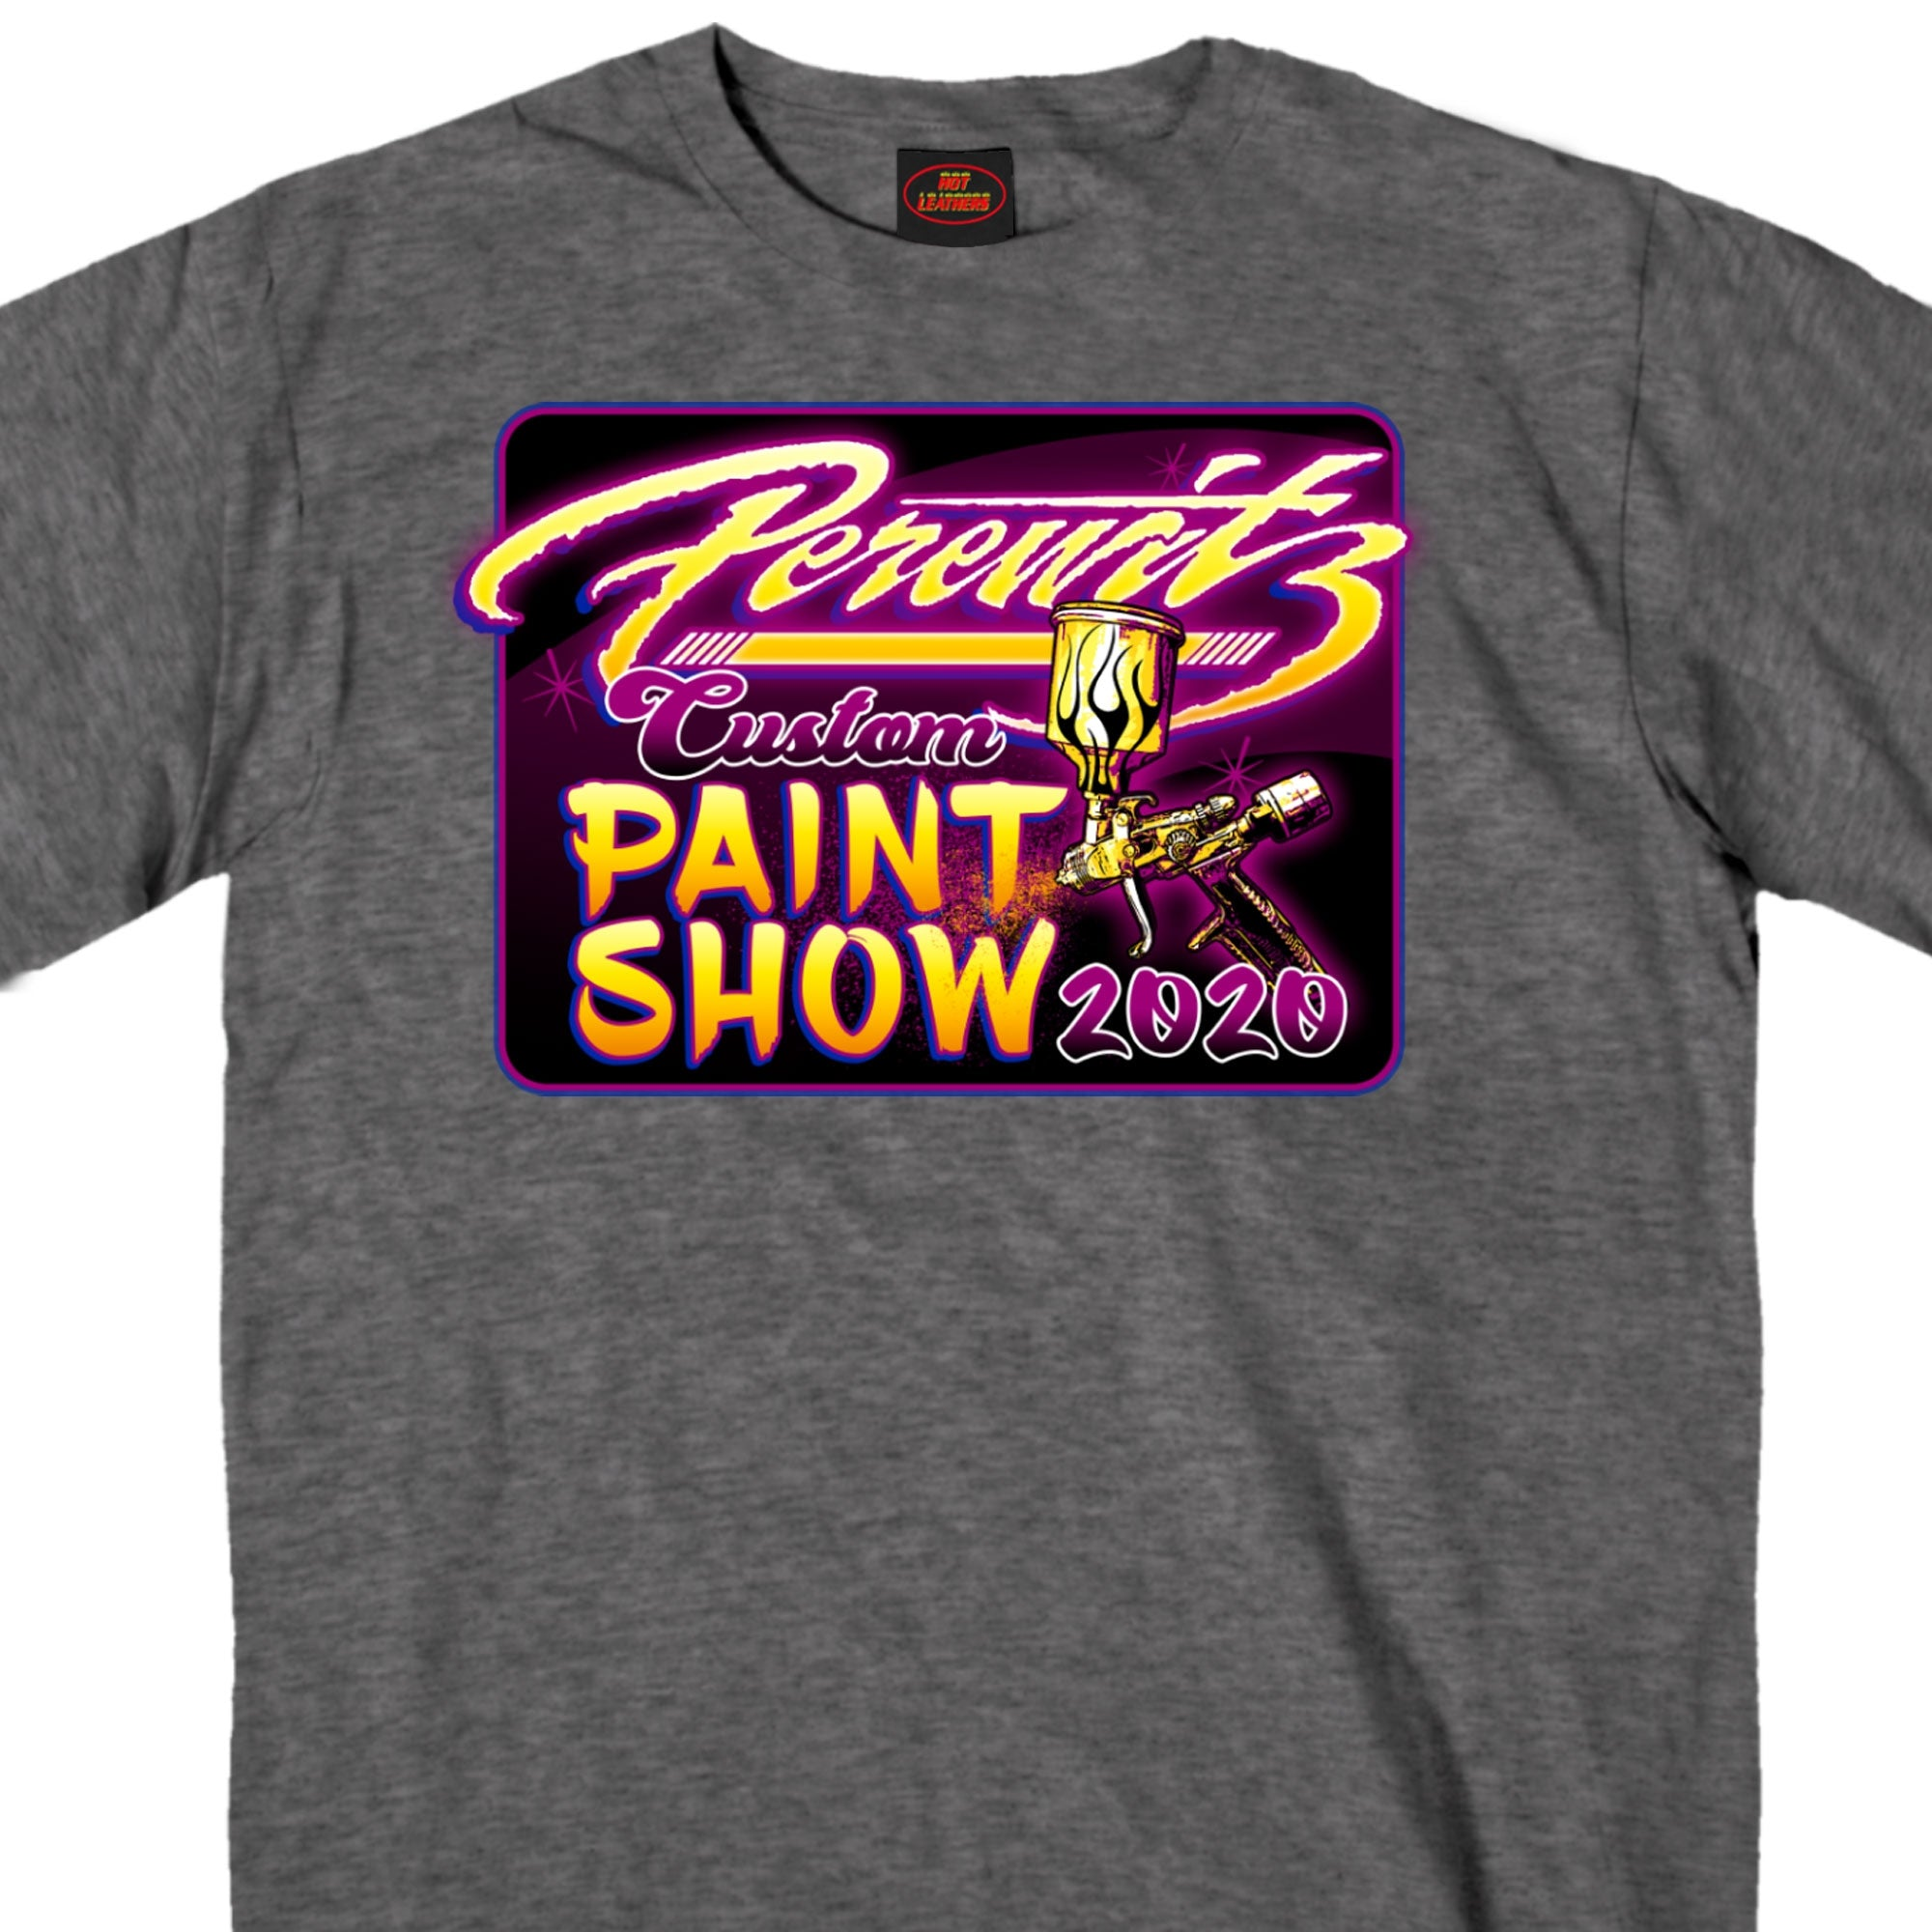 Official 2020 Perewitz Custom Paint Show Heather Charcoal T-Shirt